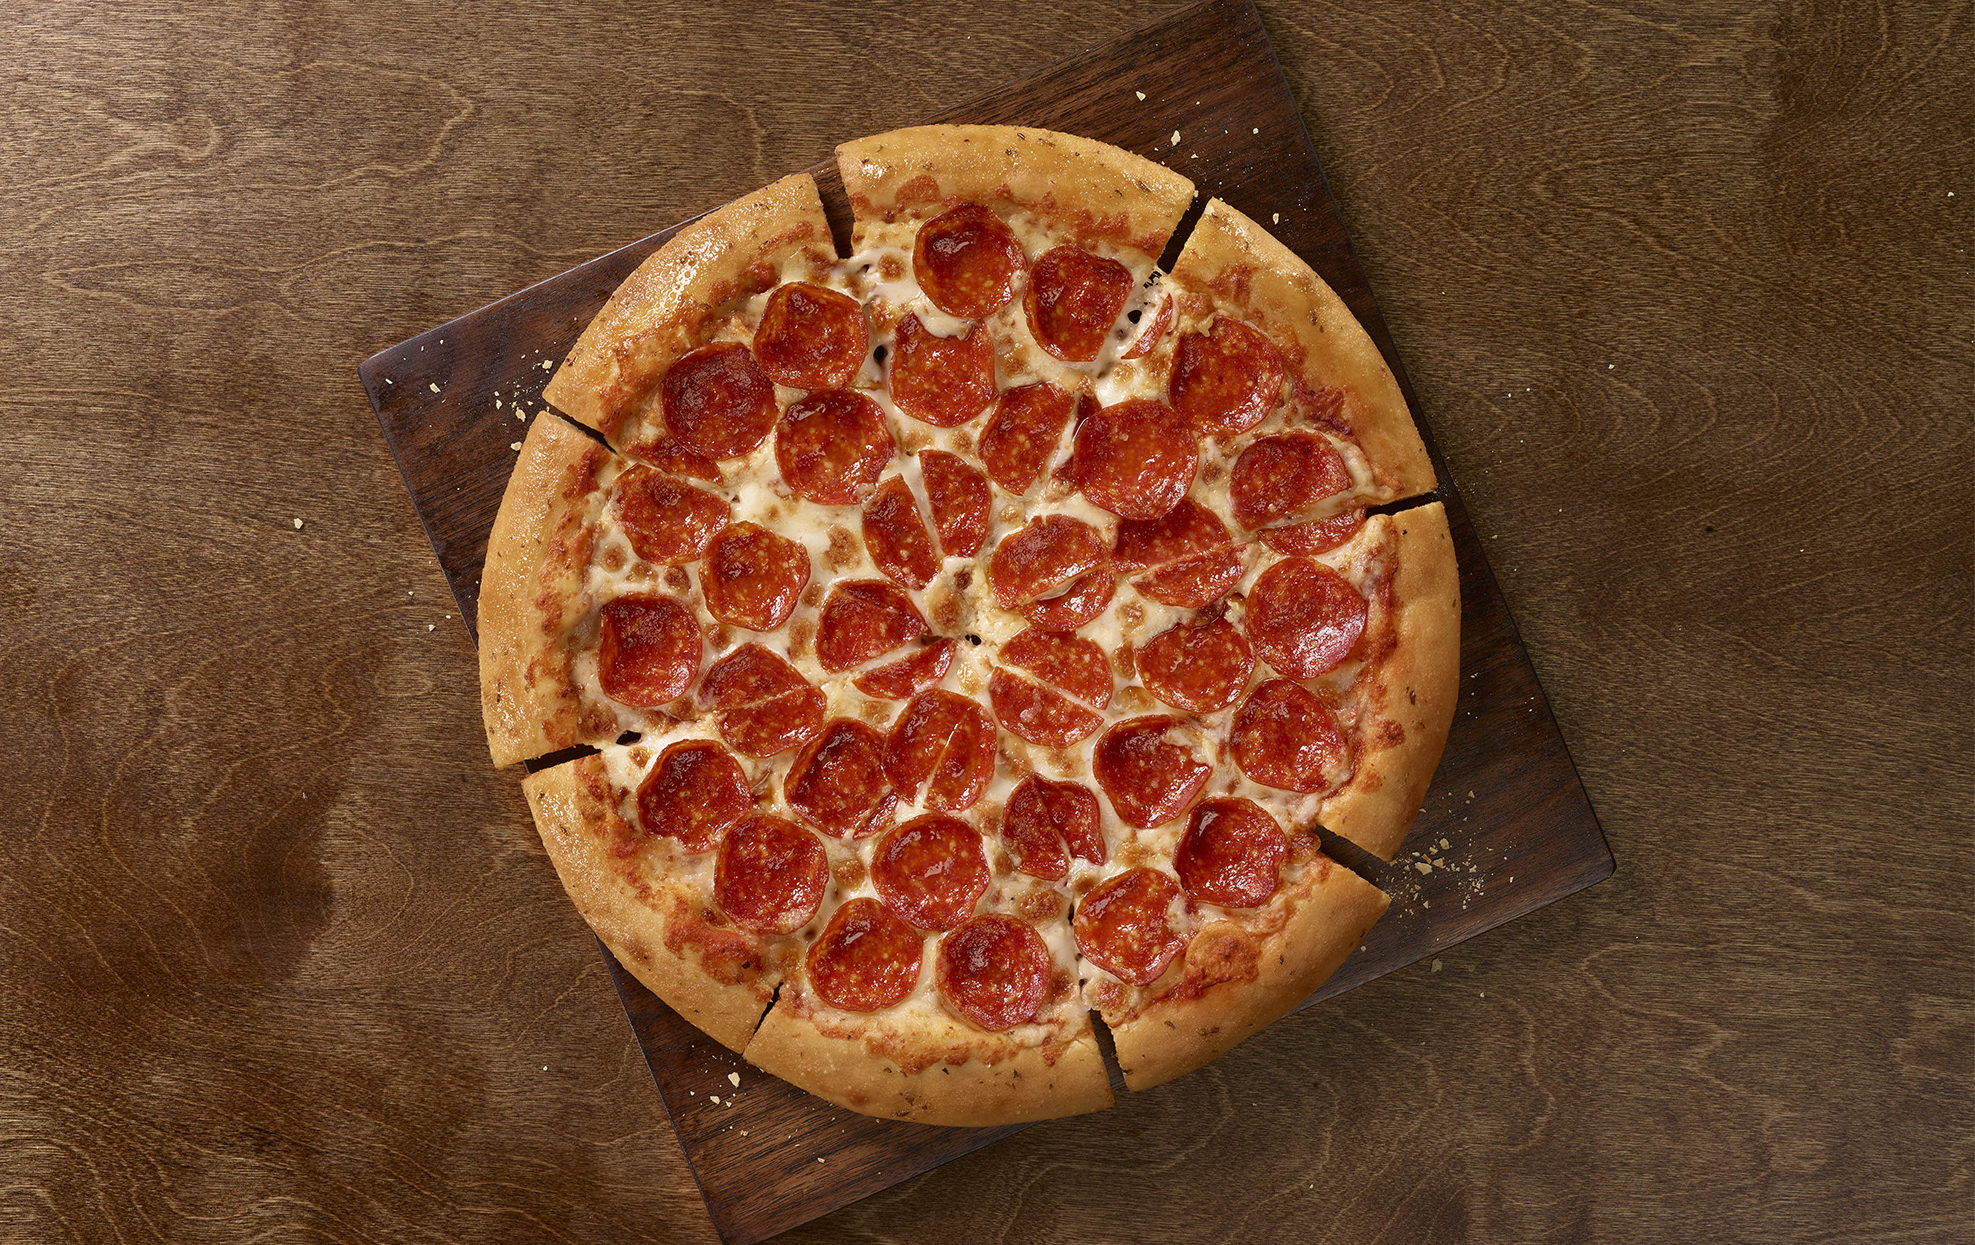 Pizza Hut Is Giving Out Free Medium Pizzas Today... Claim Yours! - Miles to Memories